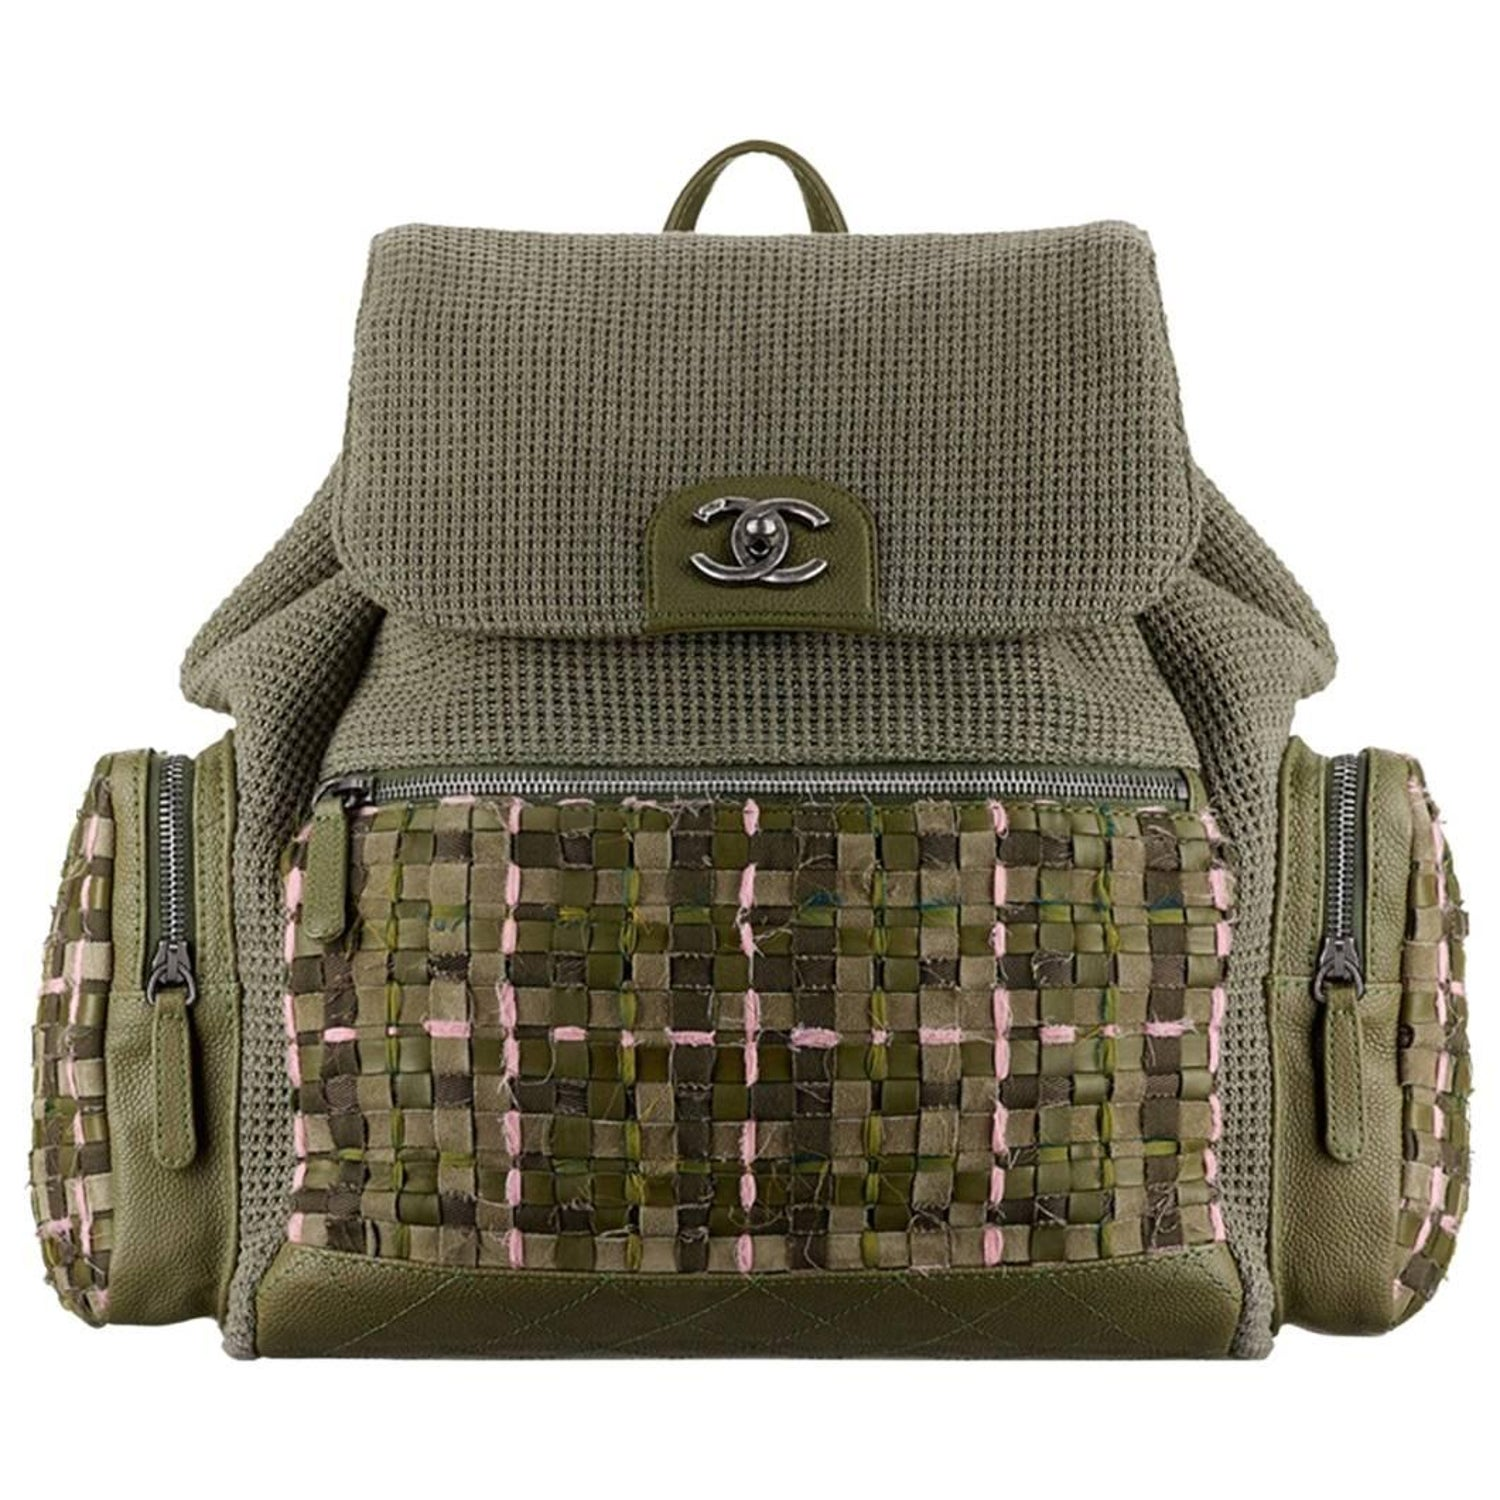 8e408ee42a6a Chanel Backpack Pocket Bag in Woven Tweed and Canvas For Sale at 1stdibs